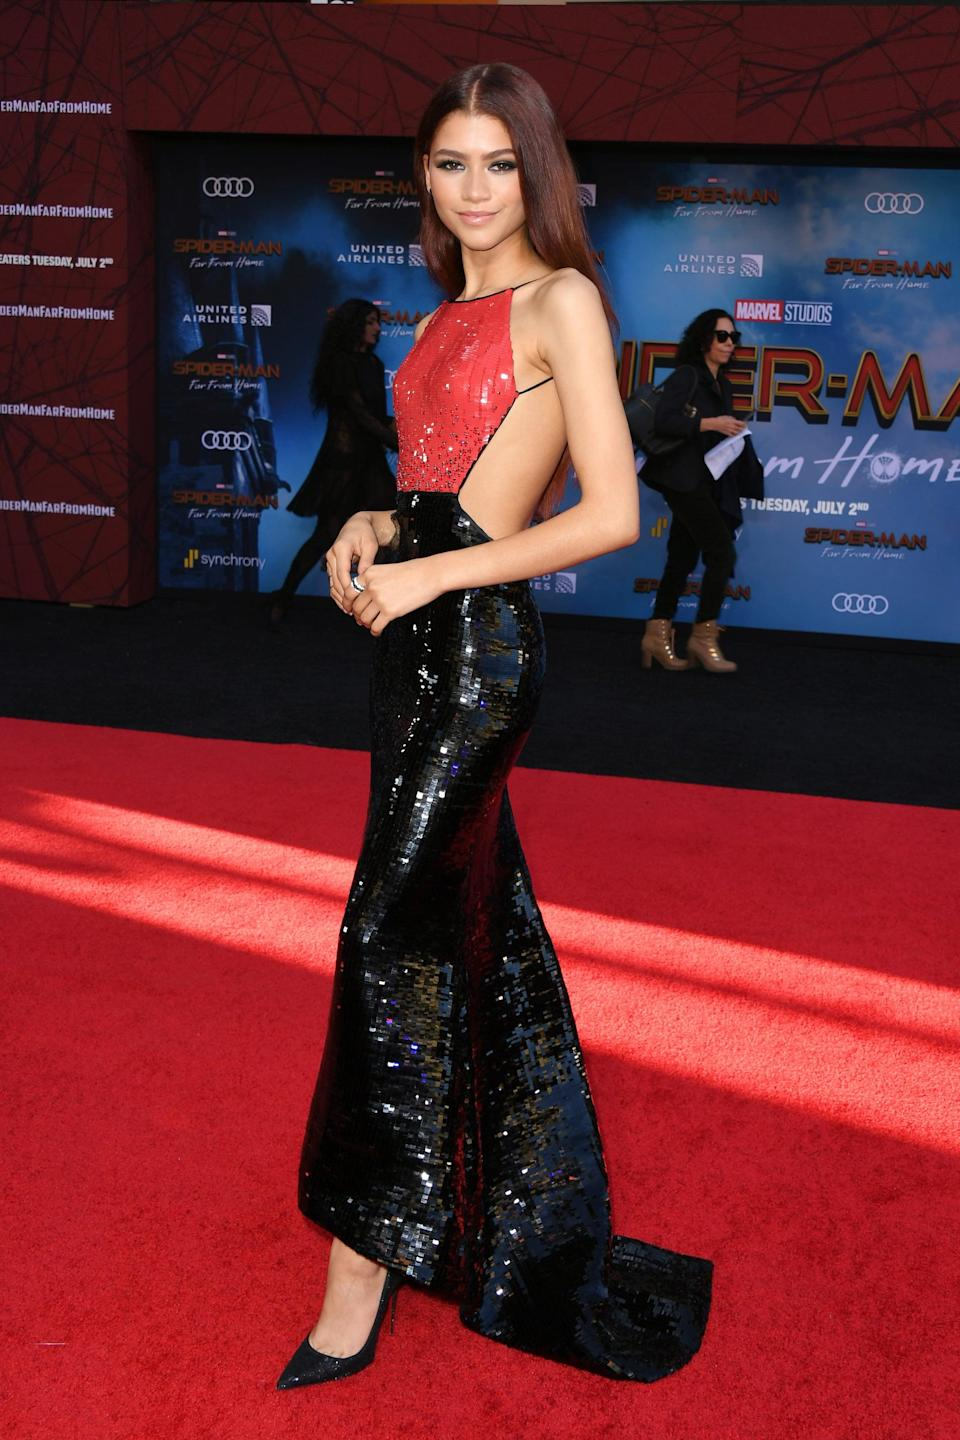 """<p><a class=""""link rapid-noclick-resp"""" href=""""https://www.popsugar.co.uk/Zendaya"""" rel=""""nofollow noopener"""" target=""""_blank"""" data-ylk=""""slk:Zendaya"""">Zendaya</a> <a href=""""https://www.popsugar.com/fashion/Zendaya-Armani-Prive-Dress-Spider-Man-Premiere-46323195"""" class=""""link rapid-noclick-resp"""" rel=""""nofollow noopener"""" target=""""_blank"""" data-ylk=""""slk:wore a sequin Armani Privé dress"""">wore a sequin Armani Privé dress</a> to the <strong>Spider-Man: Far From Home</strong> premiere in 2019. And yes, the red and black motif was <a href=""""https://www.etonline.com/zendaya-says-shes-having-a-pinch-me-moment-at-spider-man-far-from-home-premiere-exclusive-127763"""" class=""""link rapid-noclick-resp"""" rel=""""nofollow noopener"""" target=""""_blank"""" data-ylk=""""slk:meant to resemble"""">meant to resemble</a> the superhero's newly revamped suit in the sequel, shown below. """"This was our homage to the <strong>Far From Home</strong> suit that he wears,"""" <a class=""""link rapid-noclick-resp"""" href=""""https://www.popsugar.co.uk/Zendaya"""" rel=""""nofollow noopener"""" target=""""_blank"""" data-ylk=""""slk:Zendaya"""">Zendaya</a> told <strong>Entertainment Tonight</strong> on the red carpet. """"This is my own version.""""</p>"""